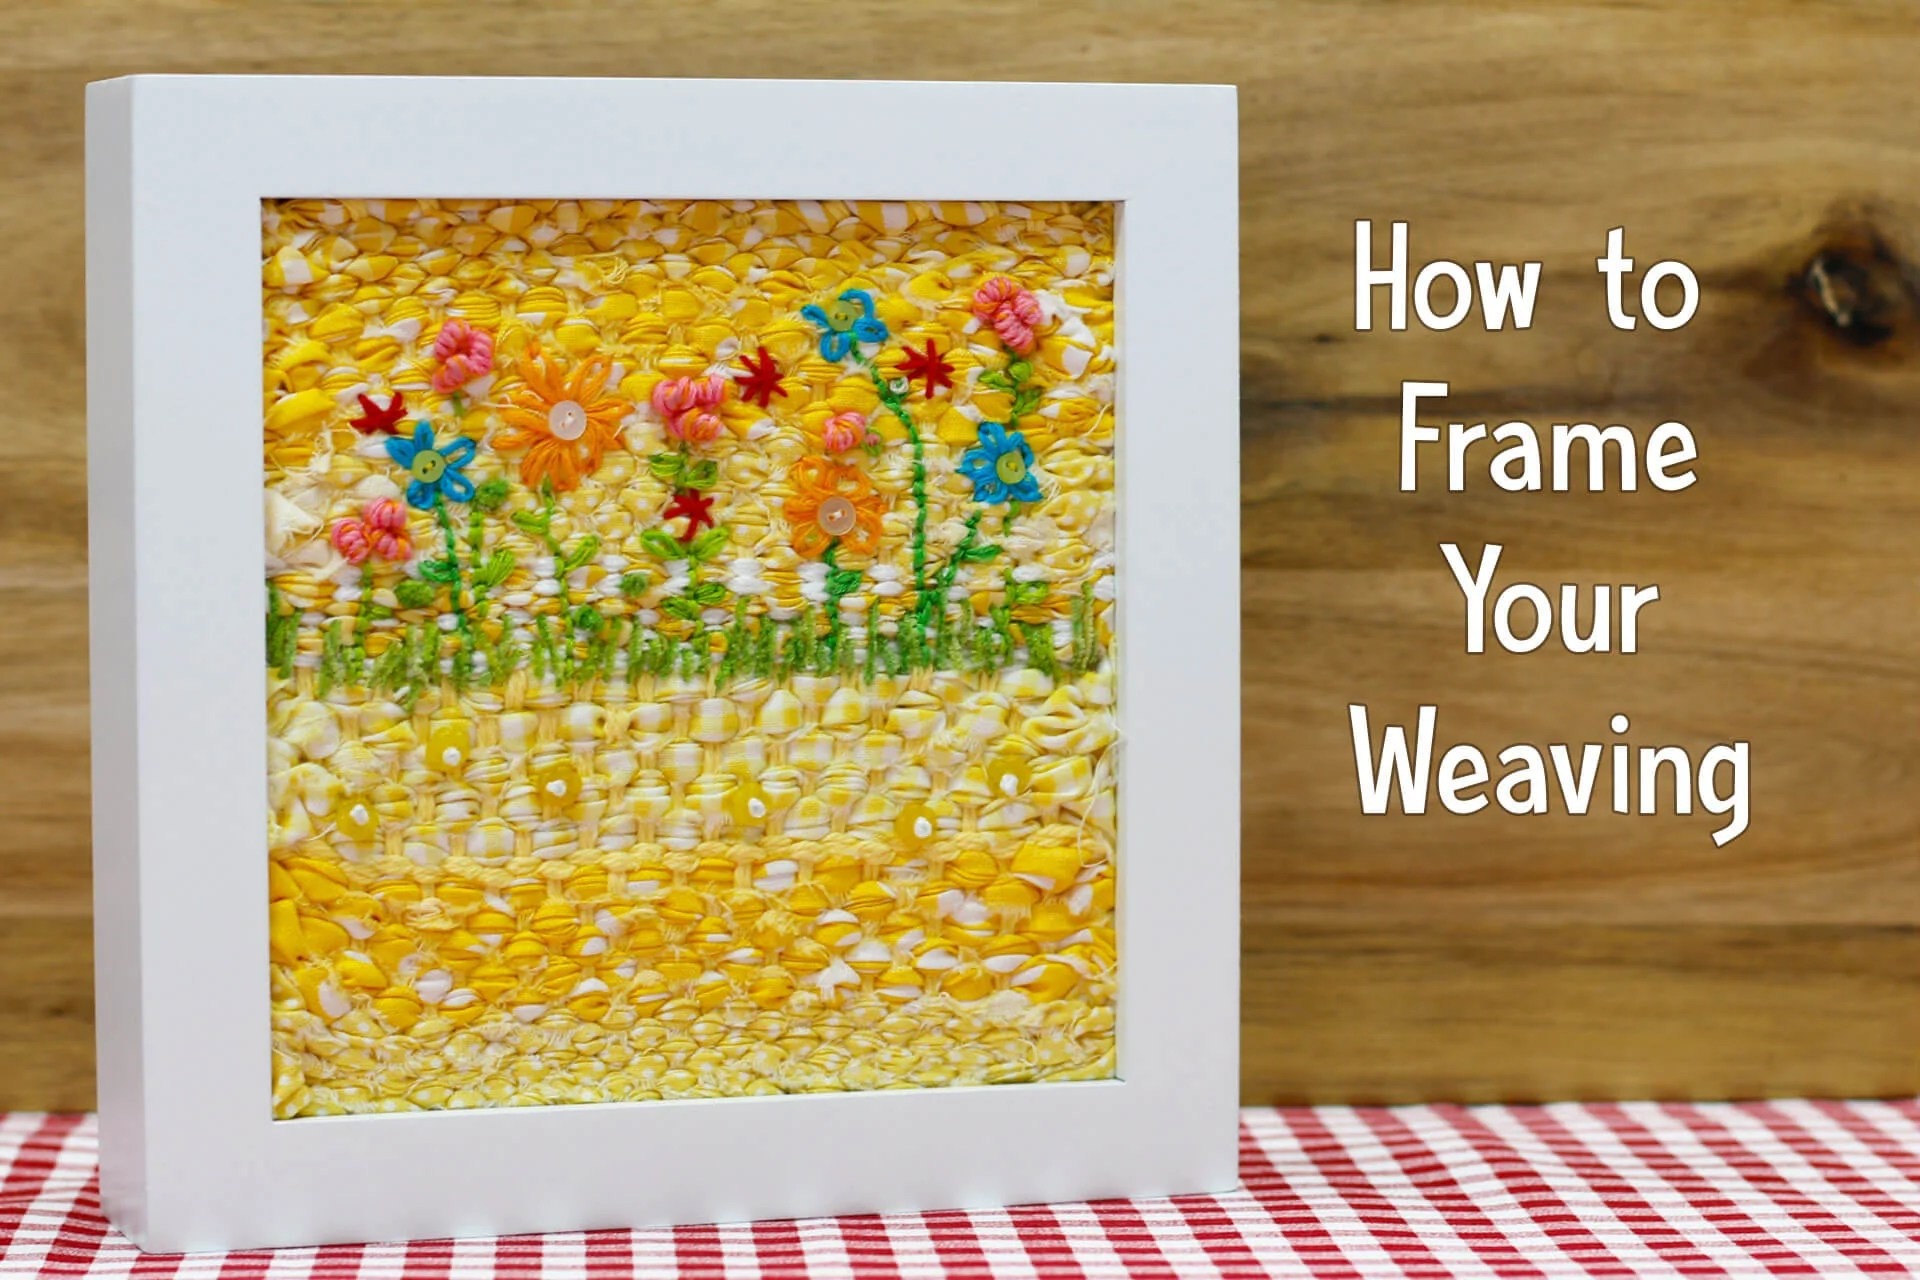 How To Frame Pictures How To Frame Your Weaving The Creativity Patch